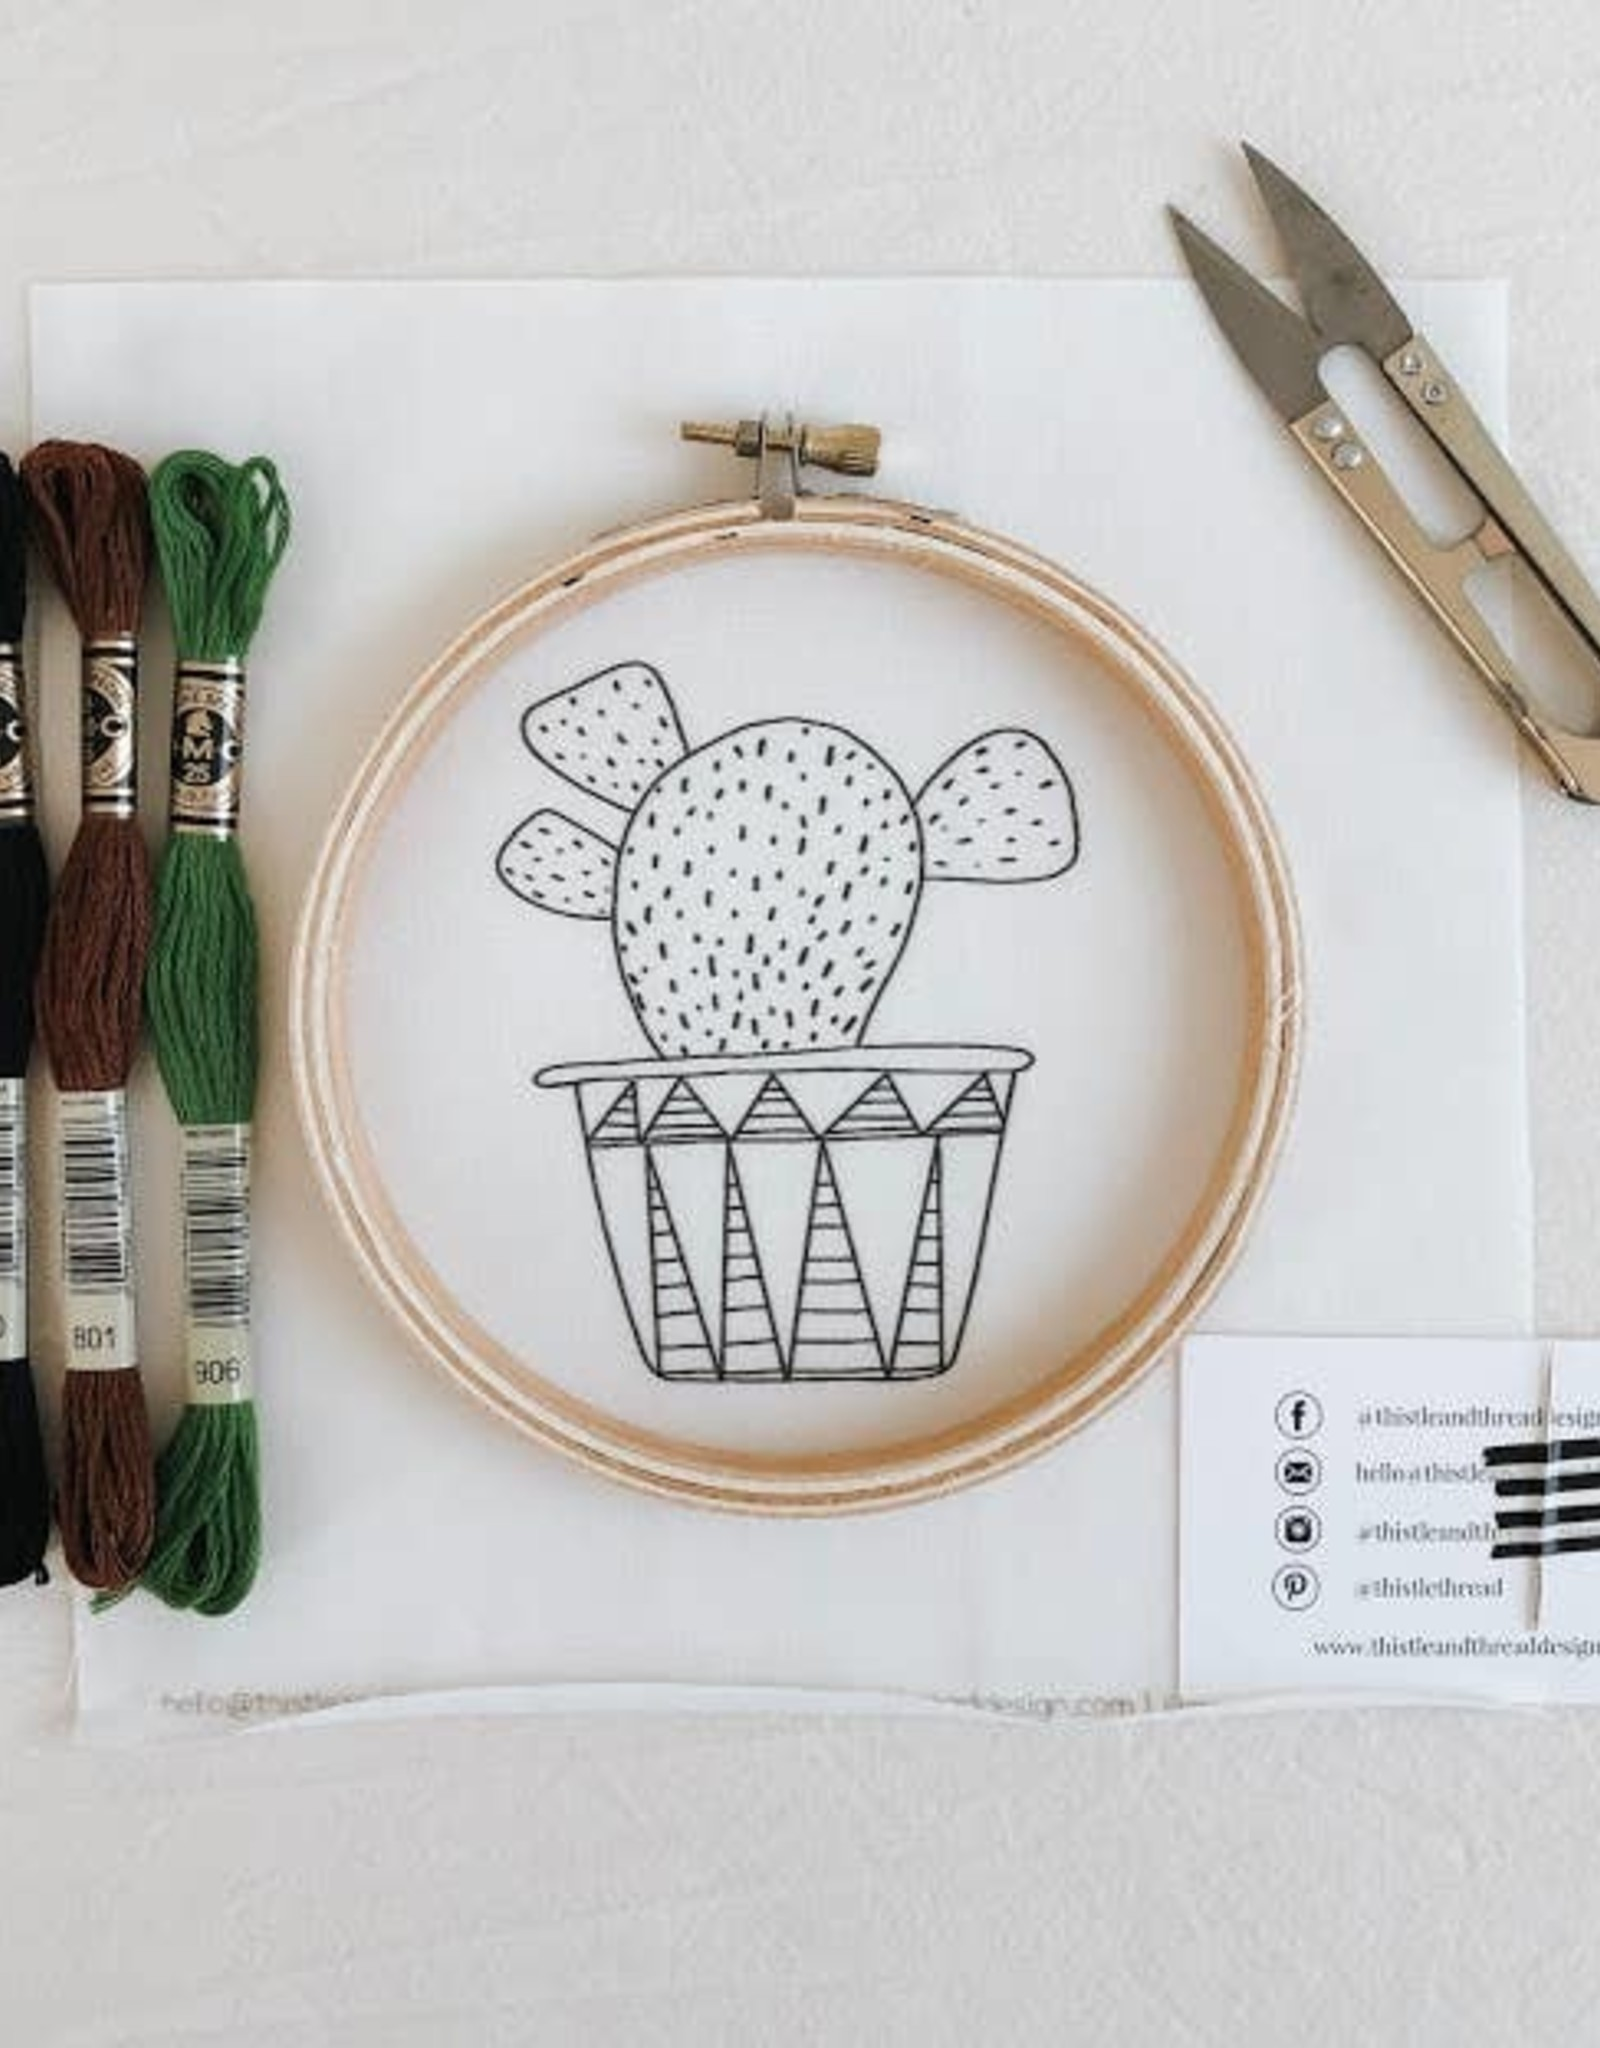 Thistle & Thread Thistle & Thread | Short Cactus Embroidery Kit